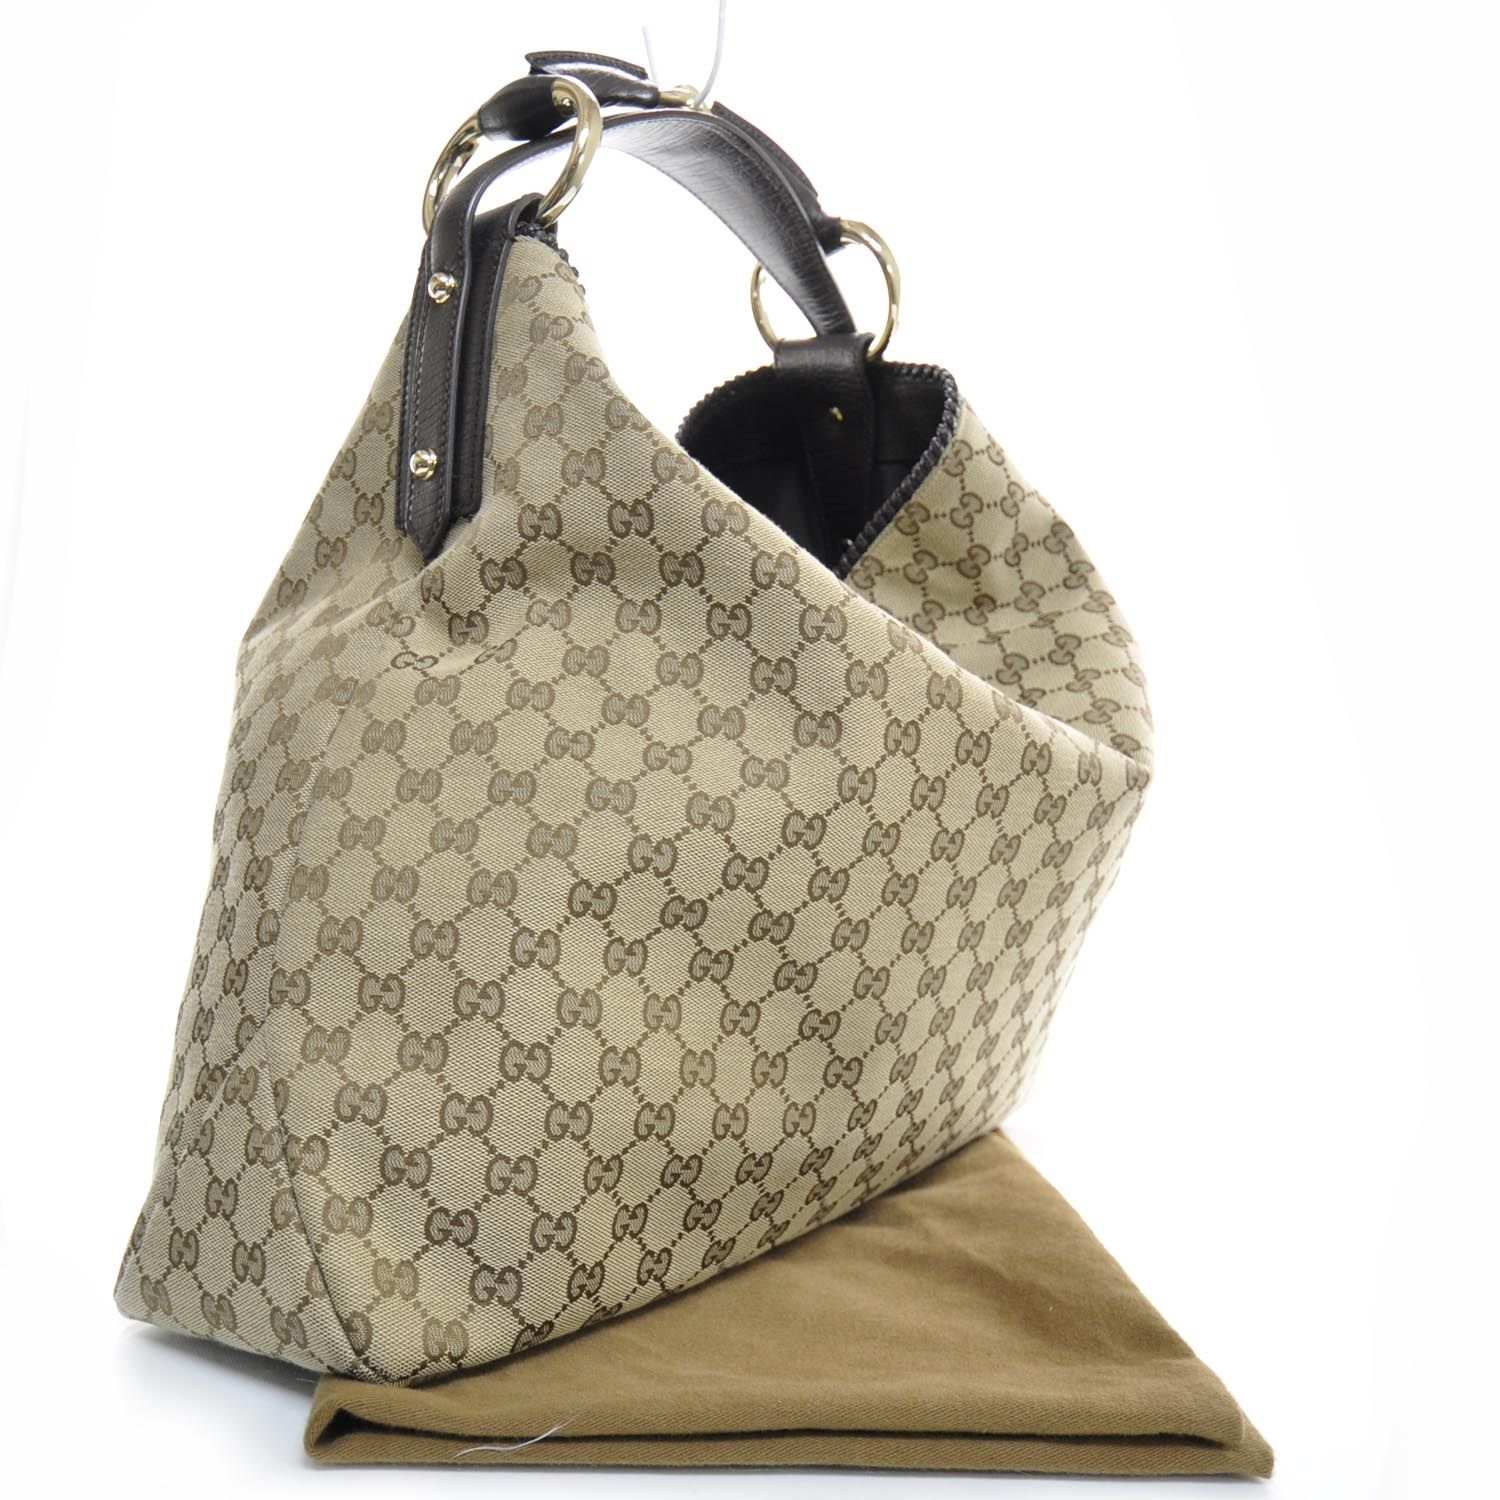 42d94ebd8d80 GUCCI Monogram Large Horsebit Chain Hobo | BAGS | Gucci monogram ...